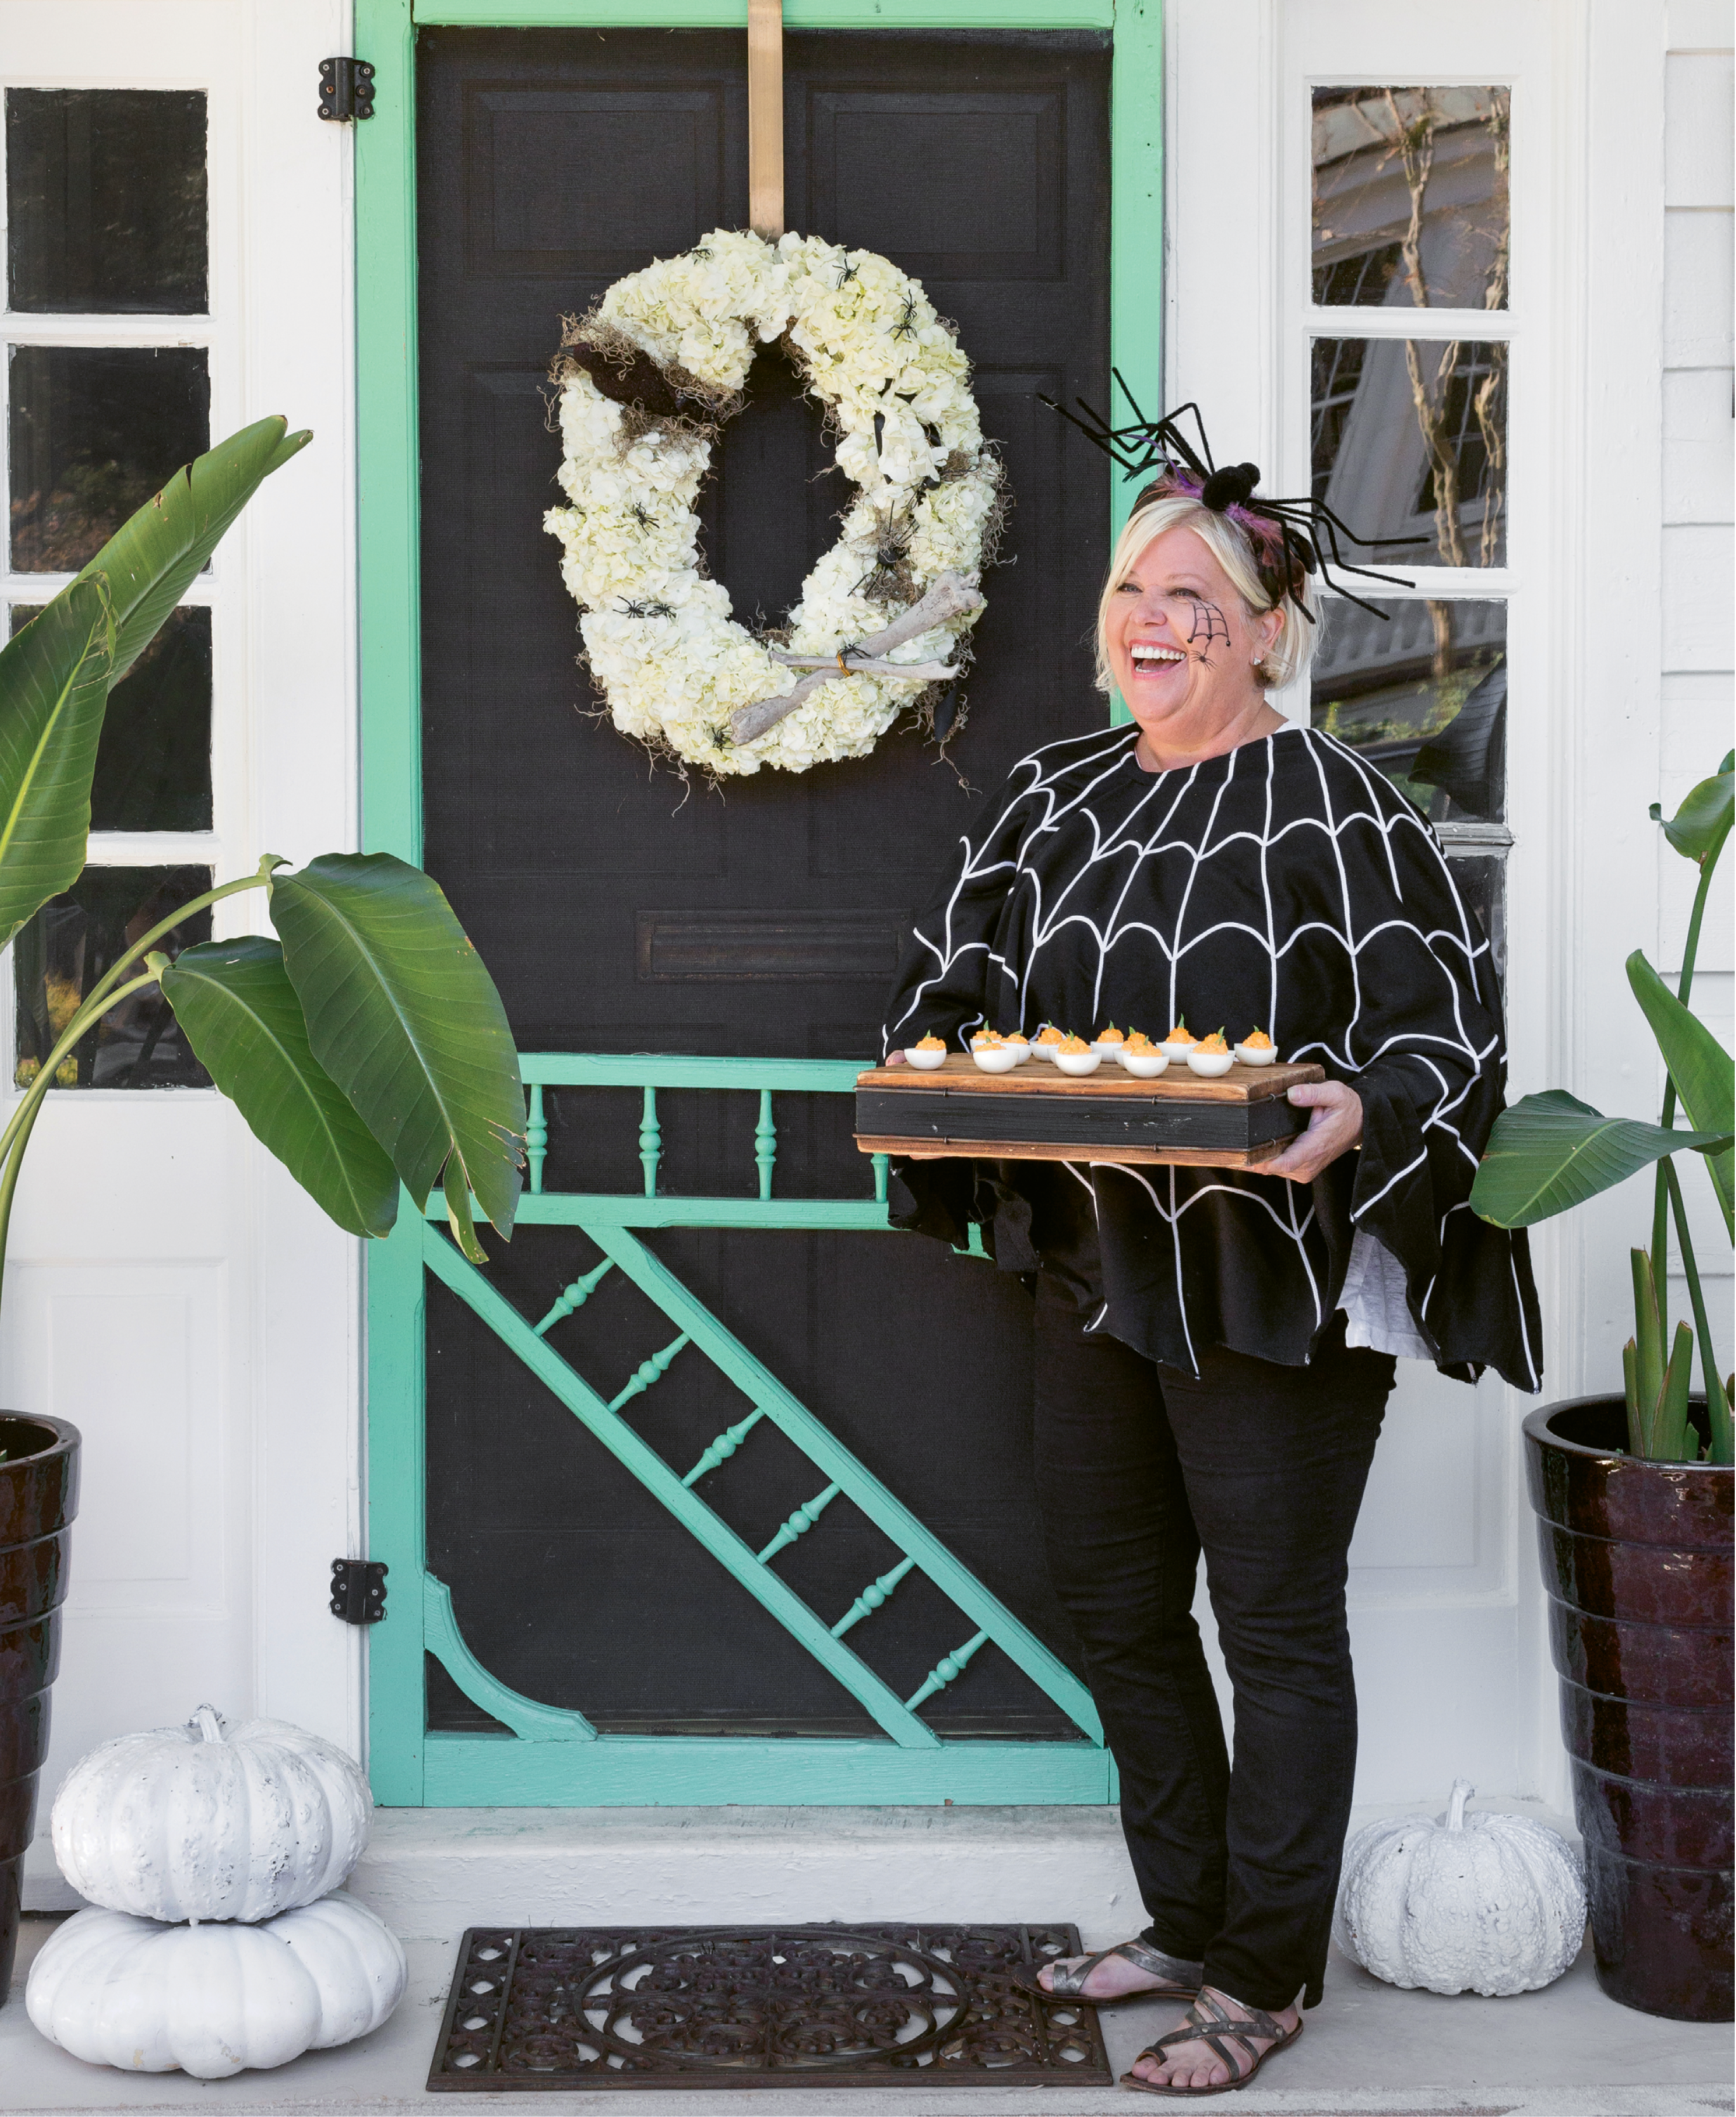 """For 15 years now, event designer Lisa Thomas's lair has been the """"it"""" place for trick-or-treaters—and their chaperones. As for adding a little freaky flair to your own front door, she says all that's needed is a classic wreath (like this hydrangea number by Lisa's floral business, Out of the Garden), florist wire, fluffy grasses, and creepy-cool add-ons—think faux crows and leggy spiders."""